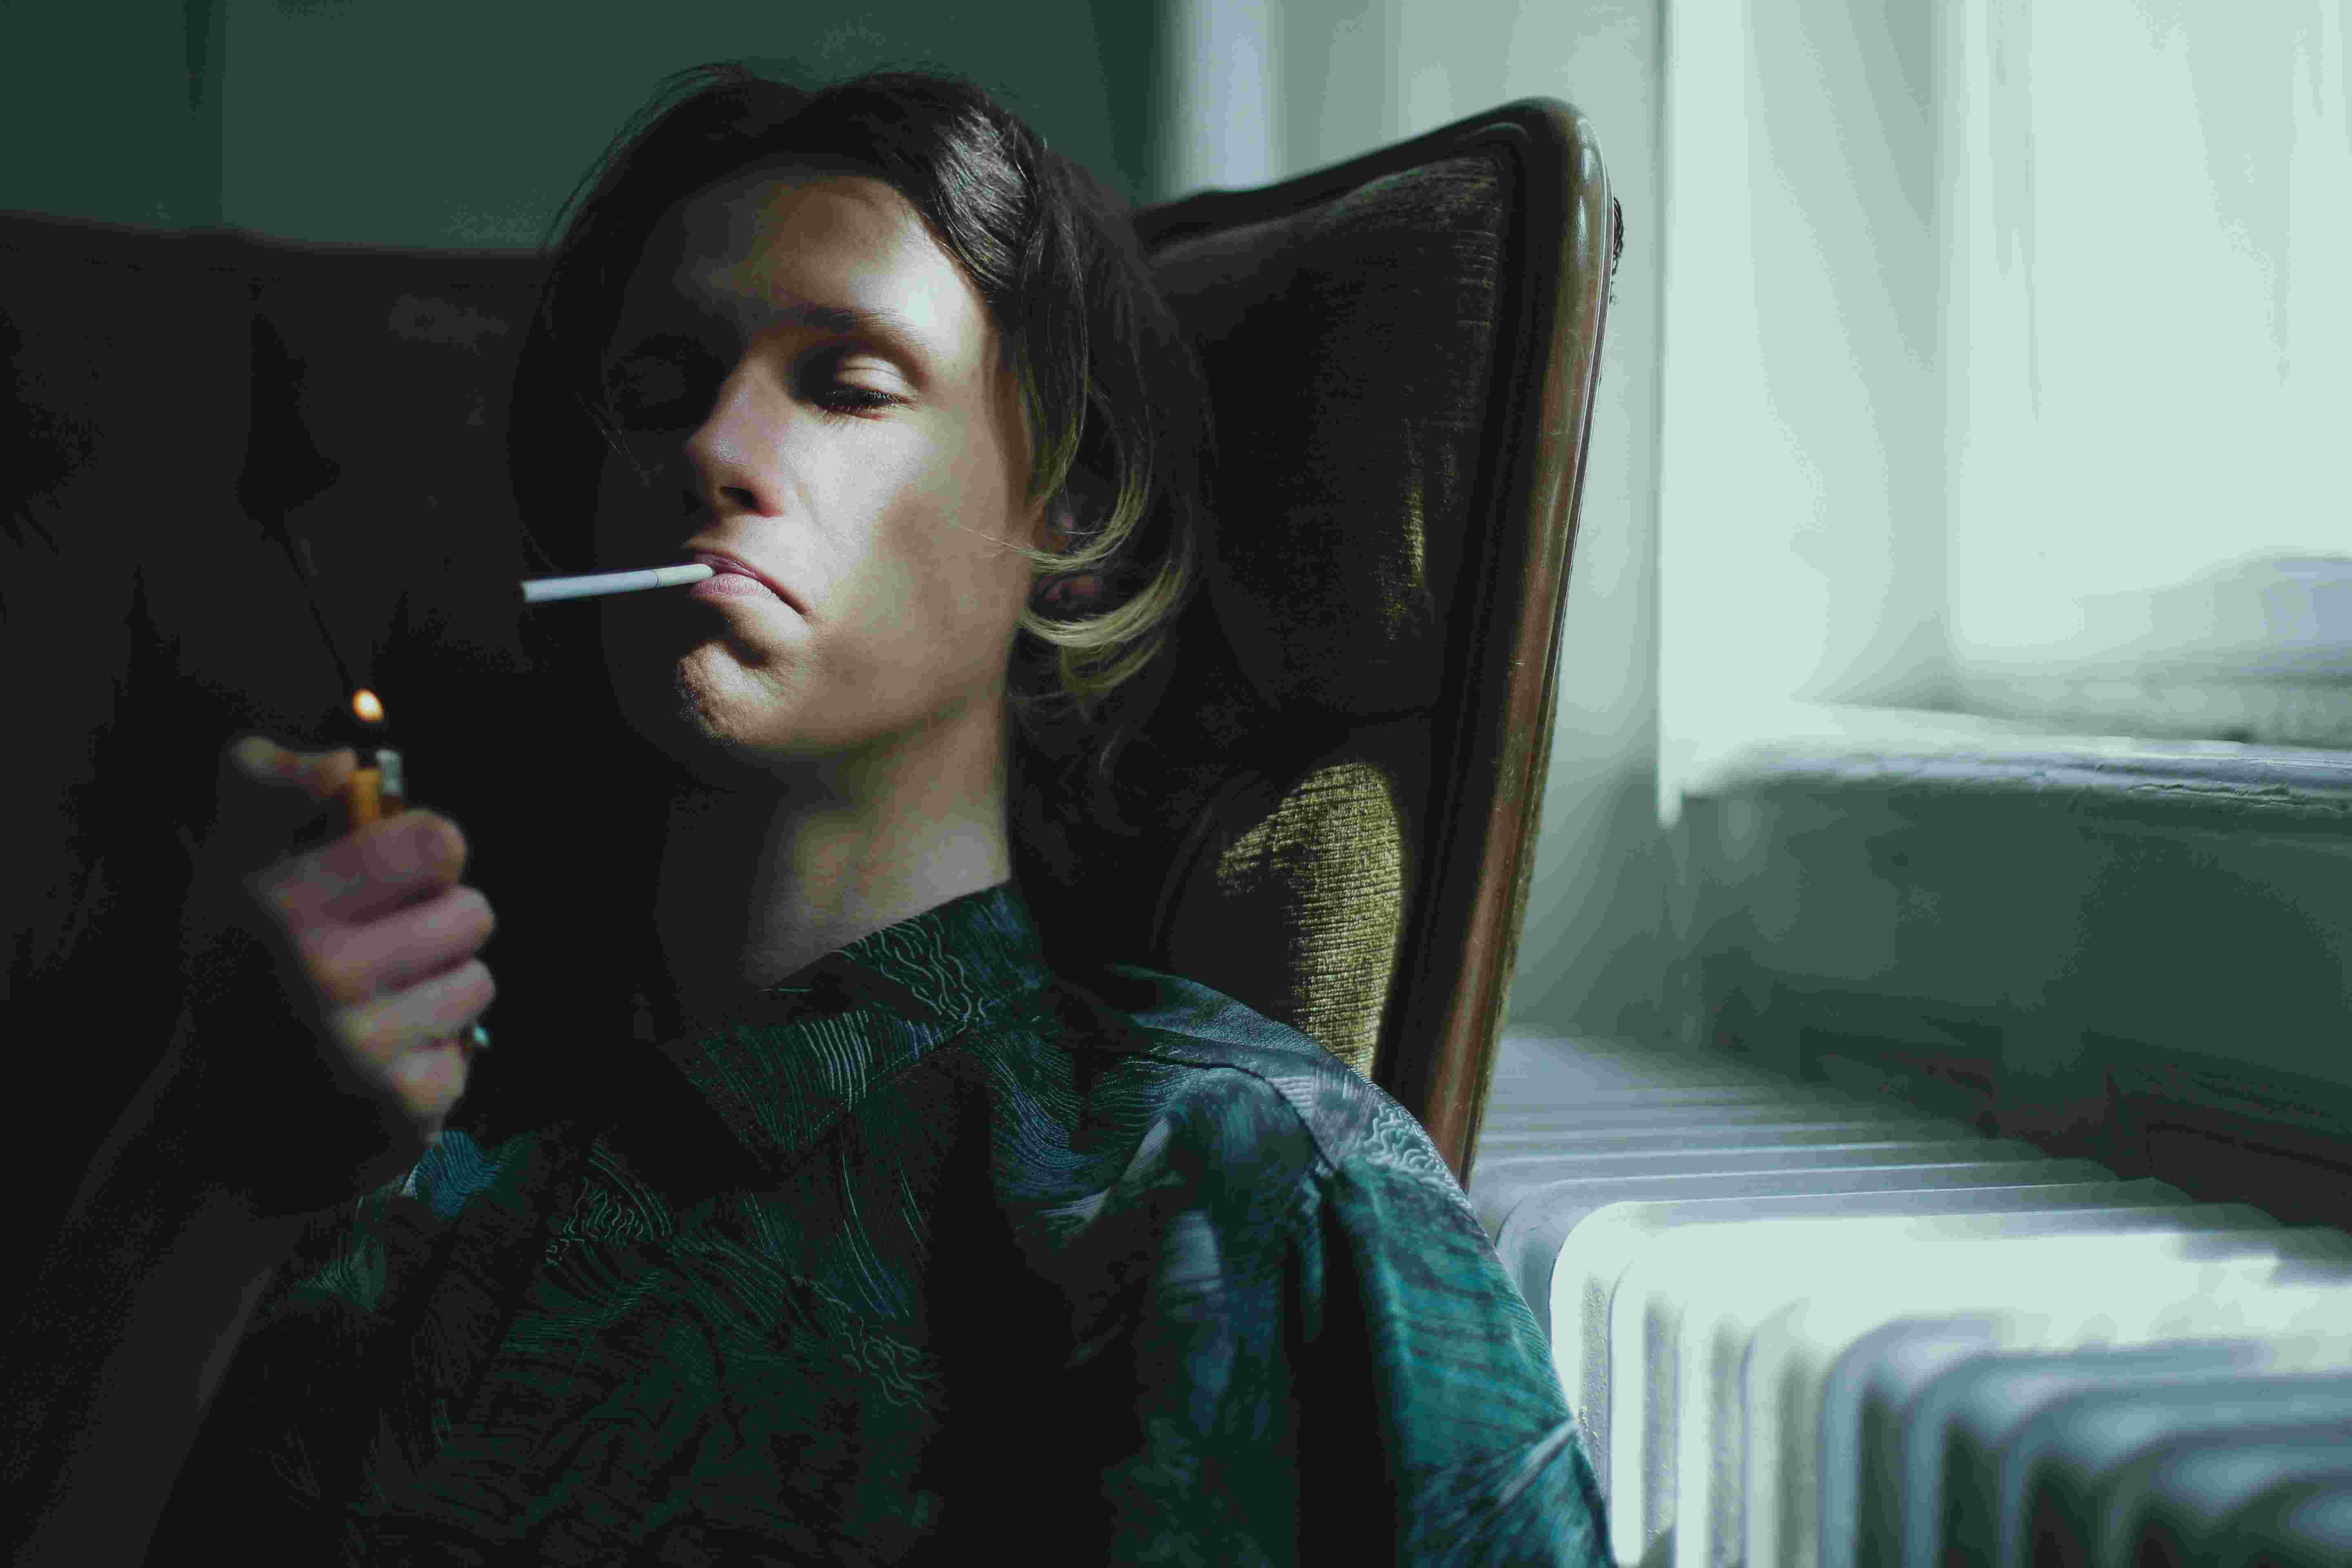 A boy, cigrette in his mouth and lighter in his hand preparing for smoking